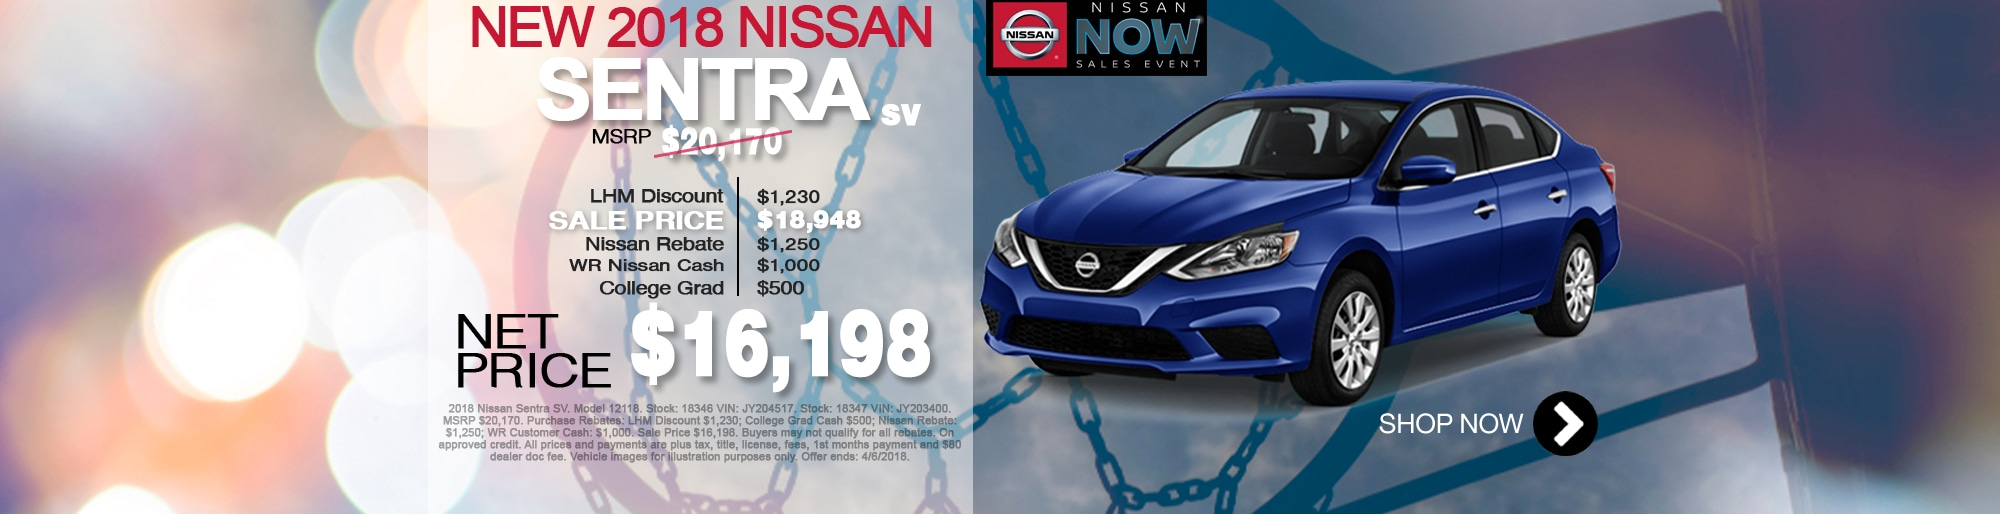 New Nissan Sentra For Sale March Special Net Price $16,198 Larry H Miller Nissan Corona